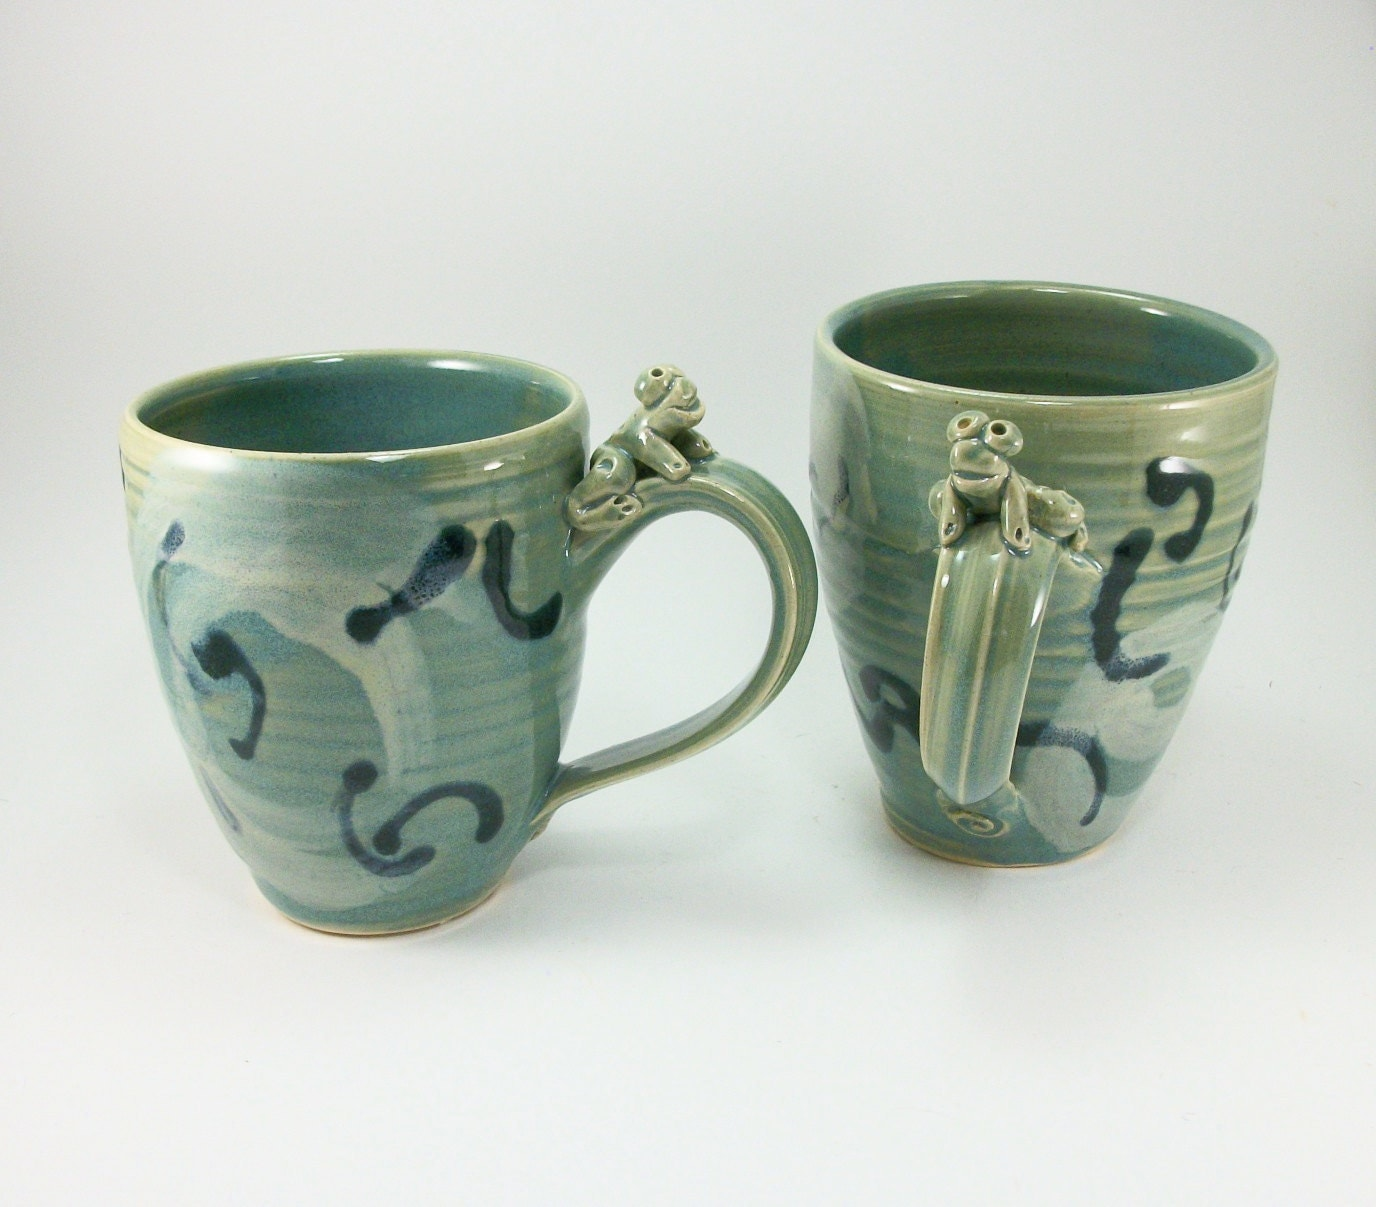 fantastic deal on a pair of frog mugs